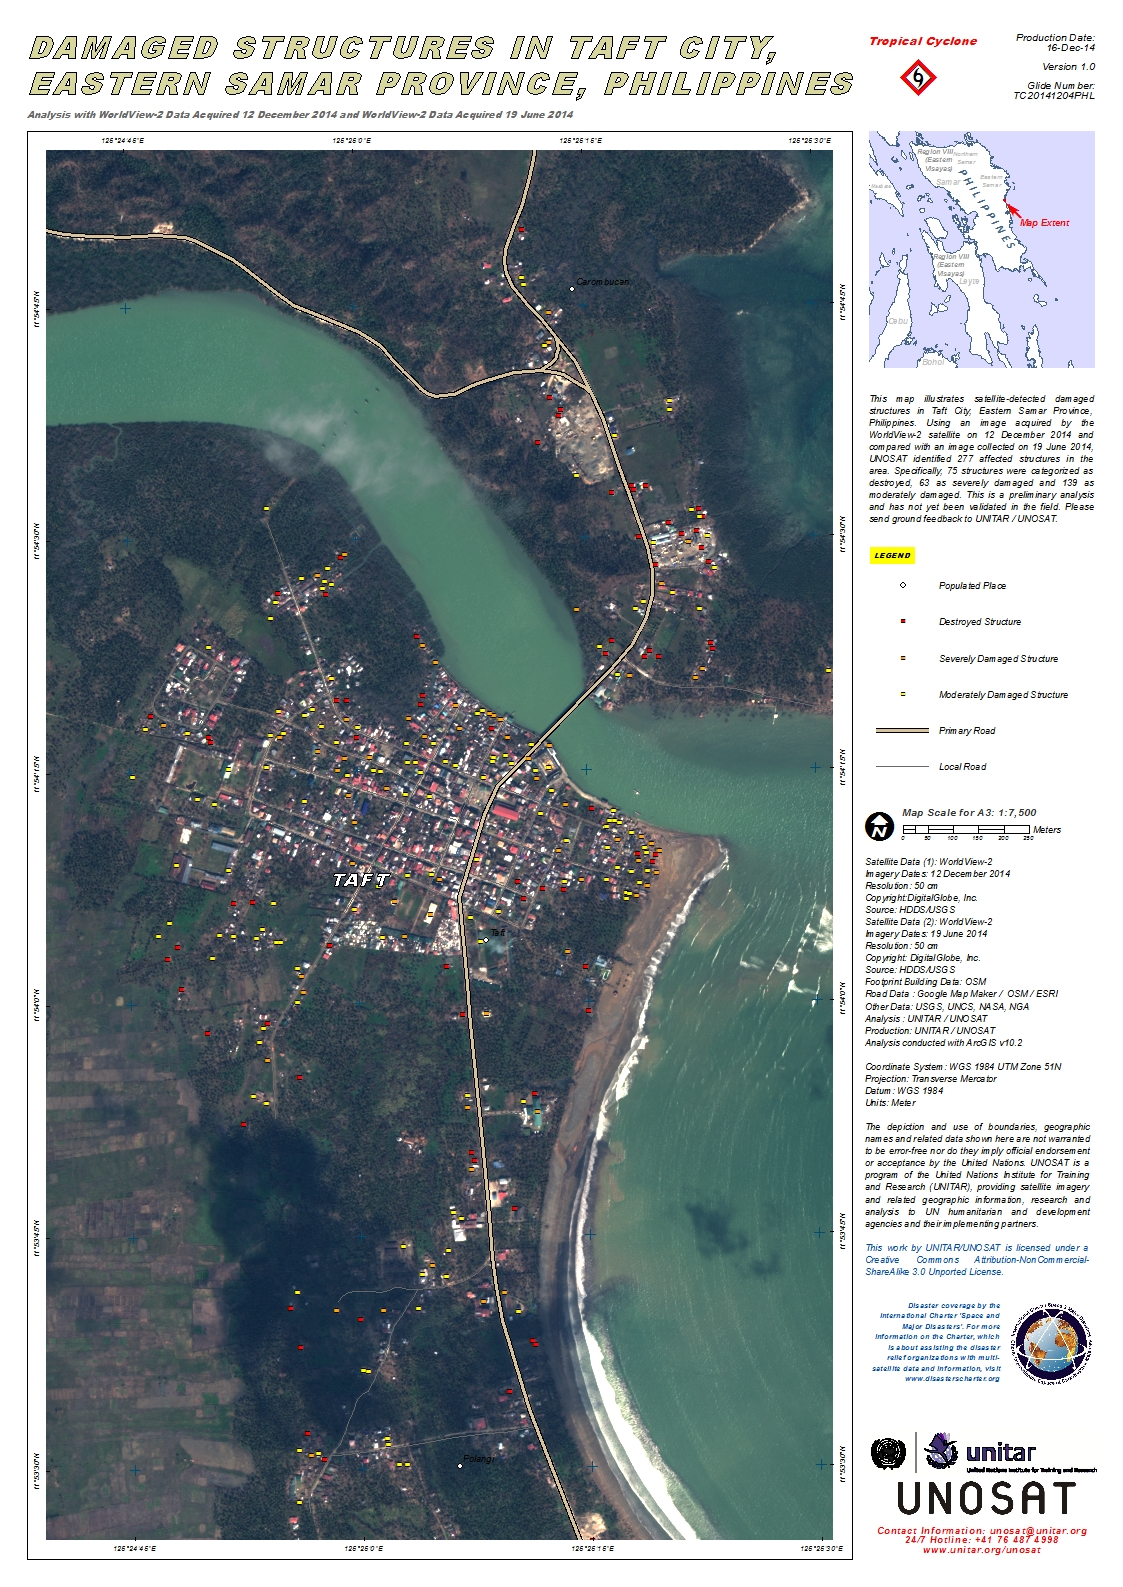 Damaged Structures In Taft City Eastern Samar Province Philippines